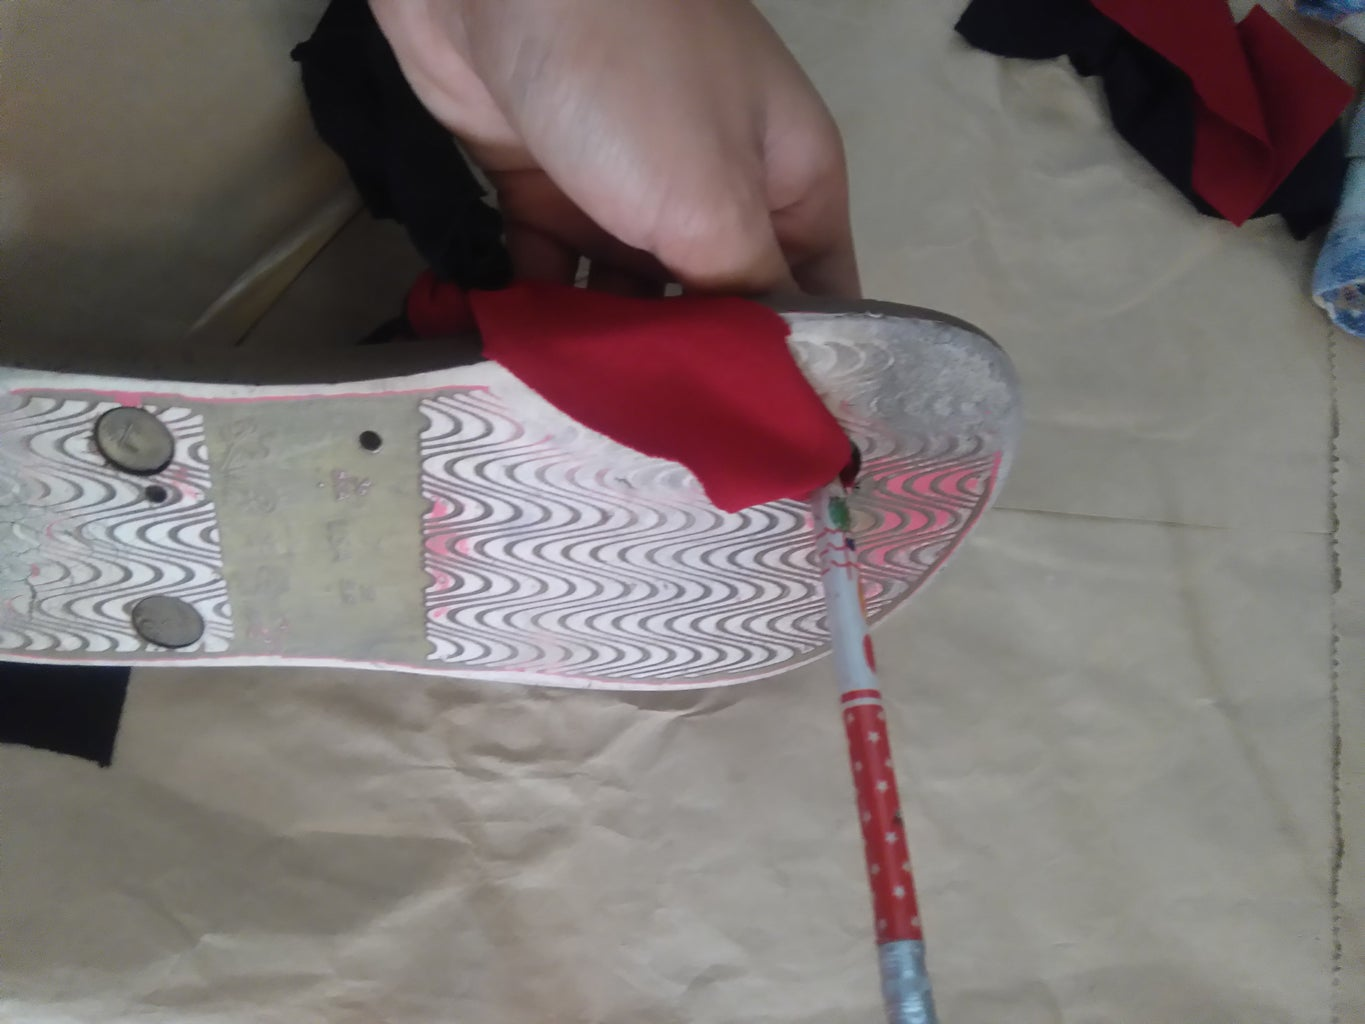 Putting the Fabric Into the Flip Flop